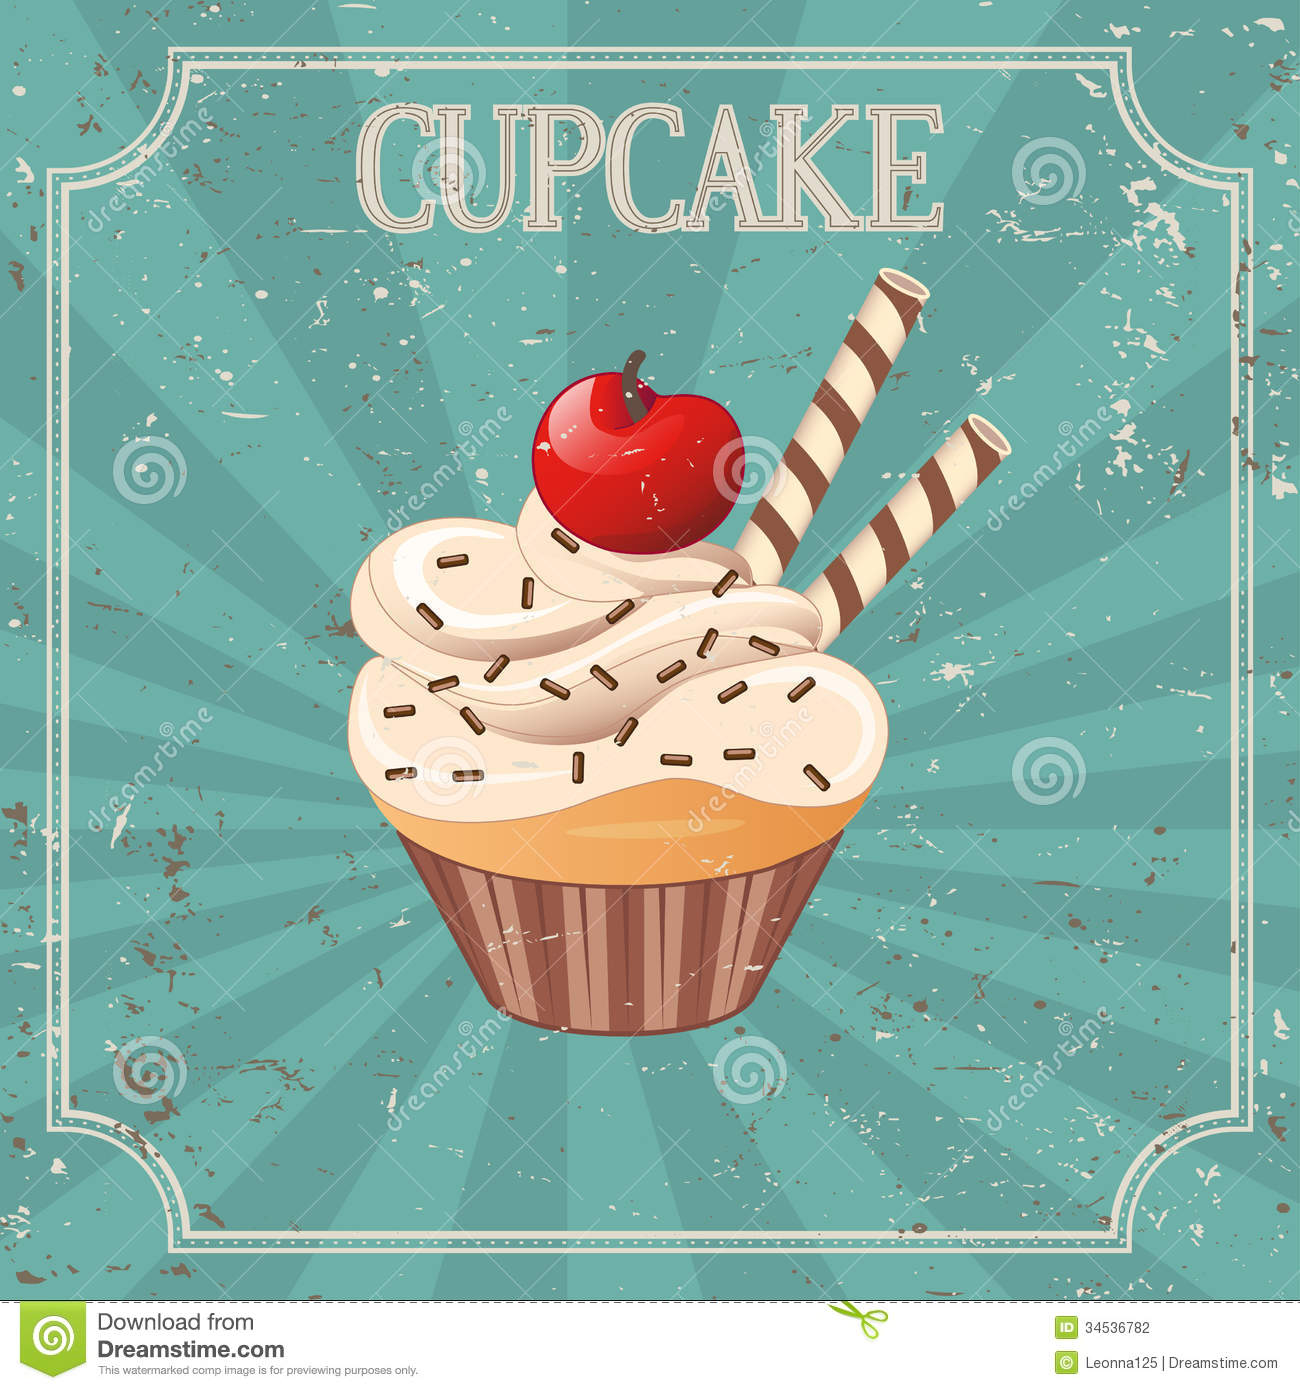 Classic Retro Illustration: Cupcake On Vintage Background